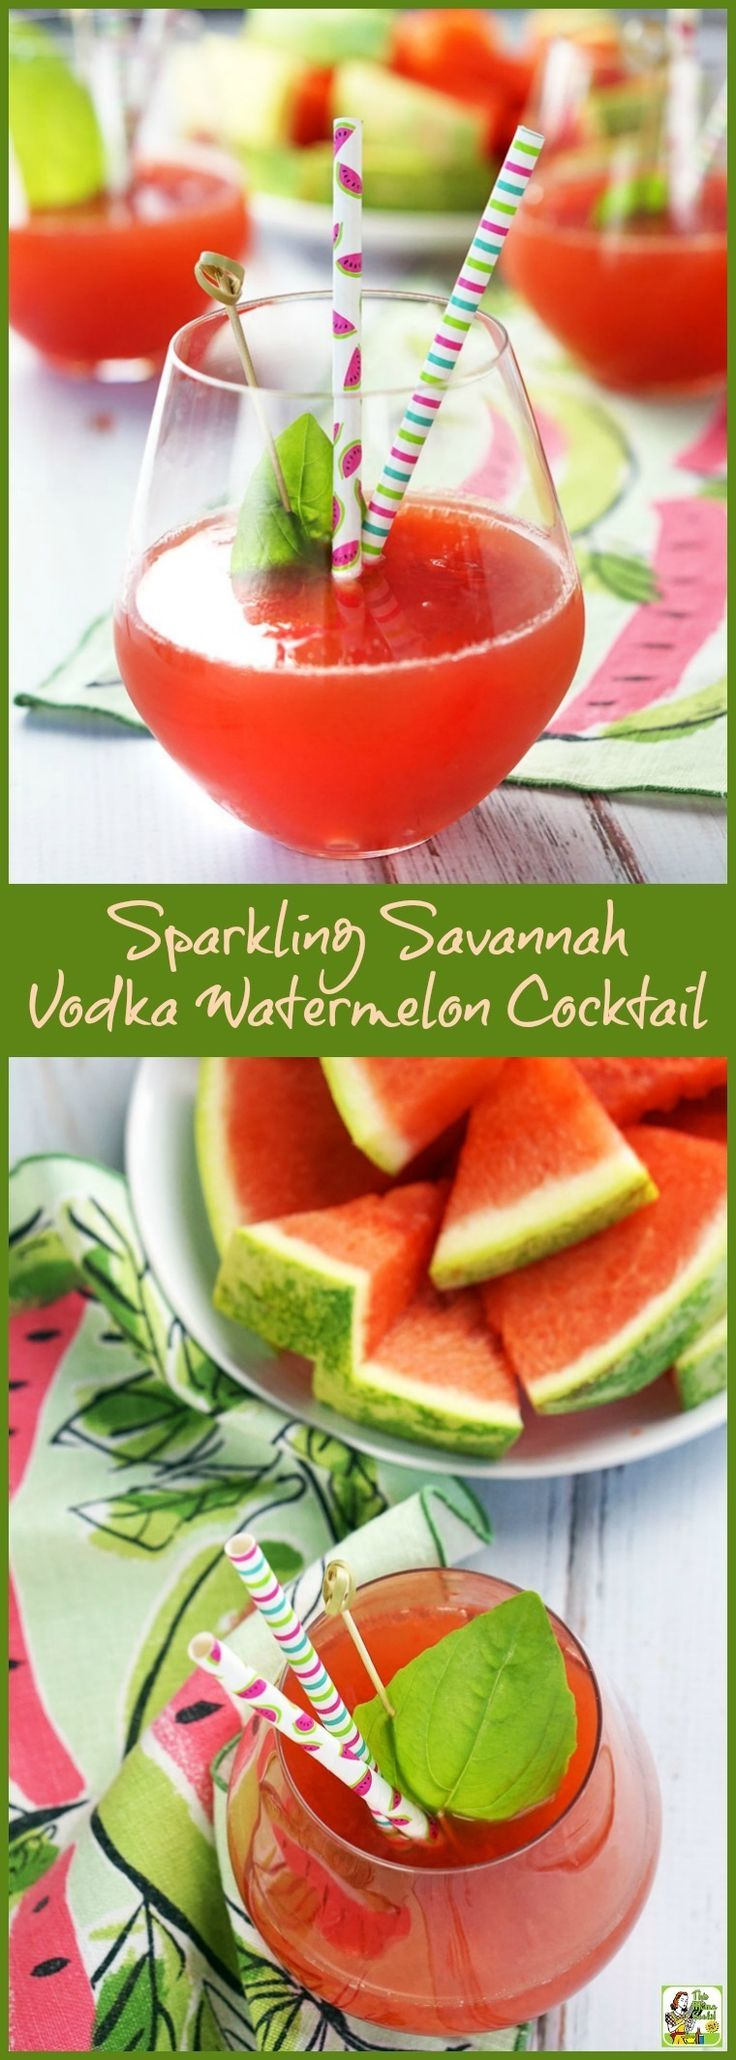 Sparkling Savannah Vodka Watermelon Cocktail